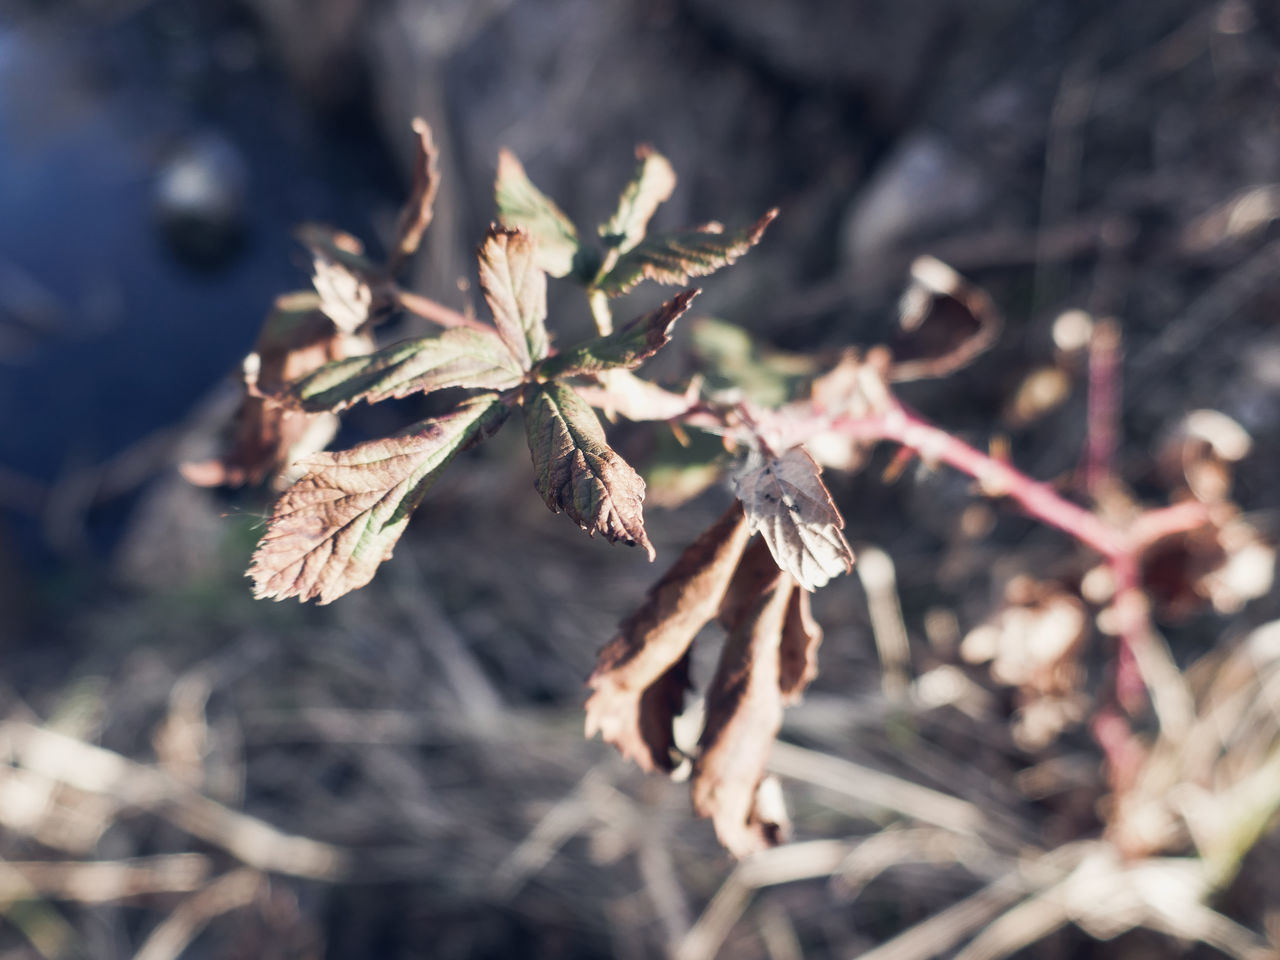 nature, dried plant, dead plant, outdoors, no people, plant, day, growth, close-up, beauty in nature, branch, fragility